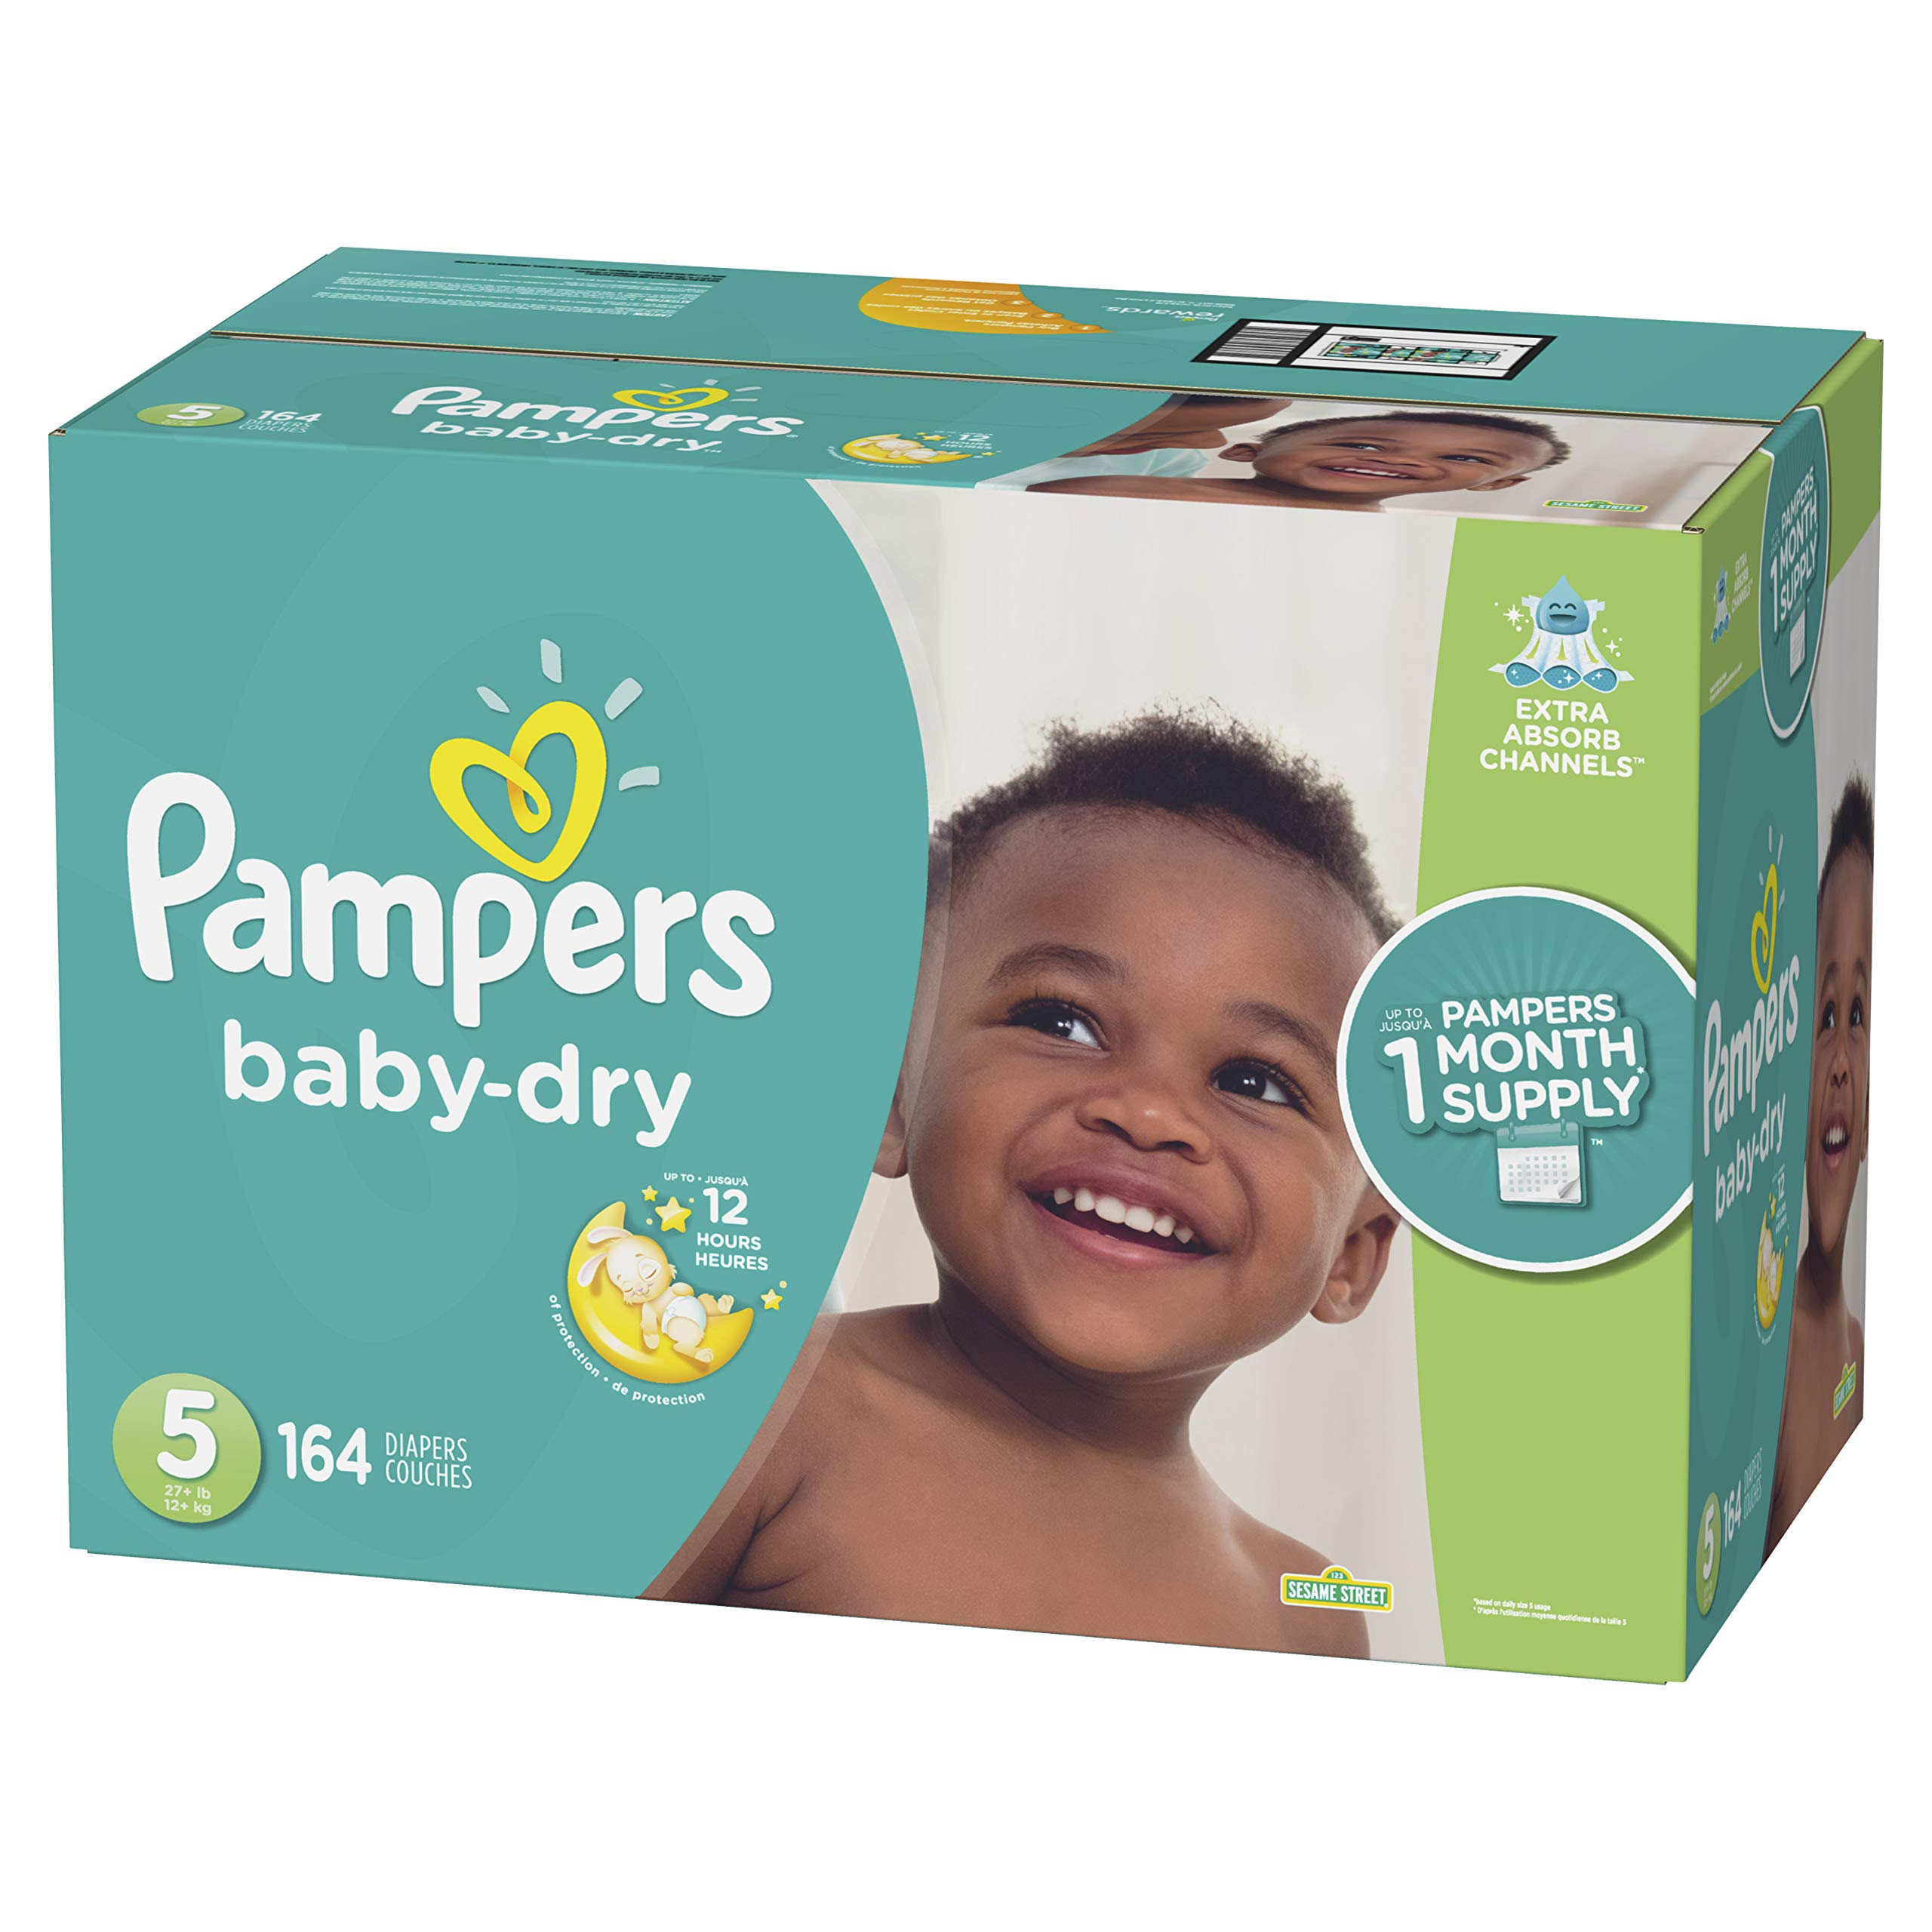 Diapers Size 5, 164 Count - Pampers Baby Dry Disposable Baby Diapers, One Month Supply by Pampers